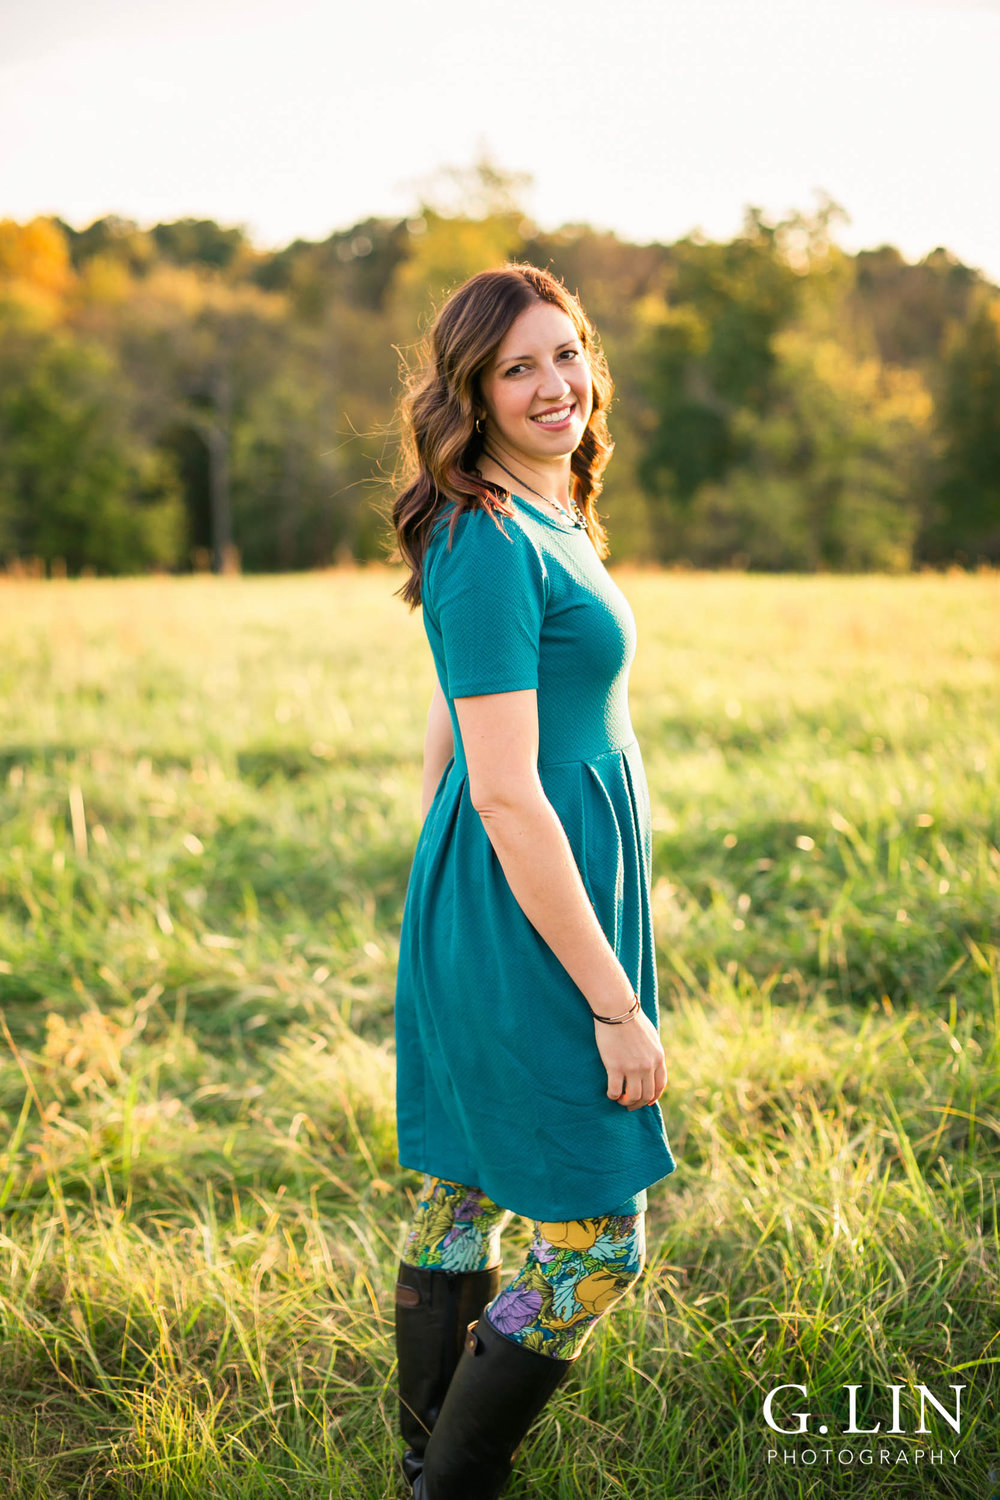 Gorgeous portrait shot of woman in dress in open field | Raleigh Family Photographer | G. Lin Photography